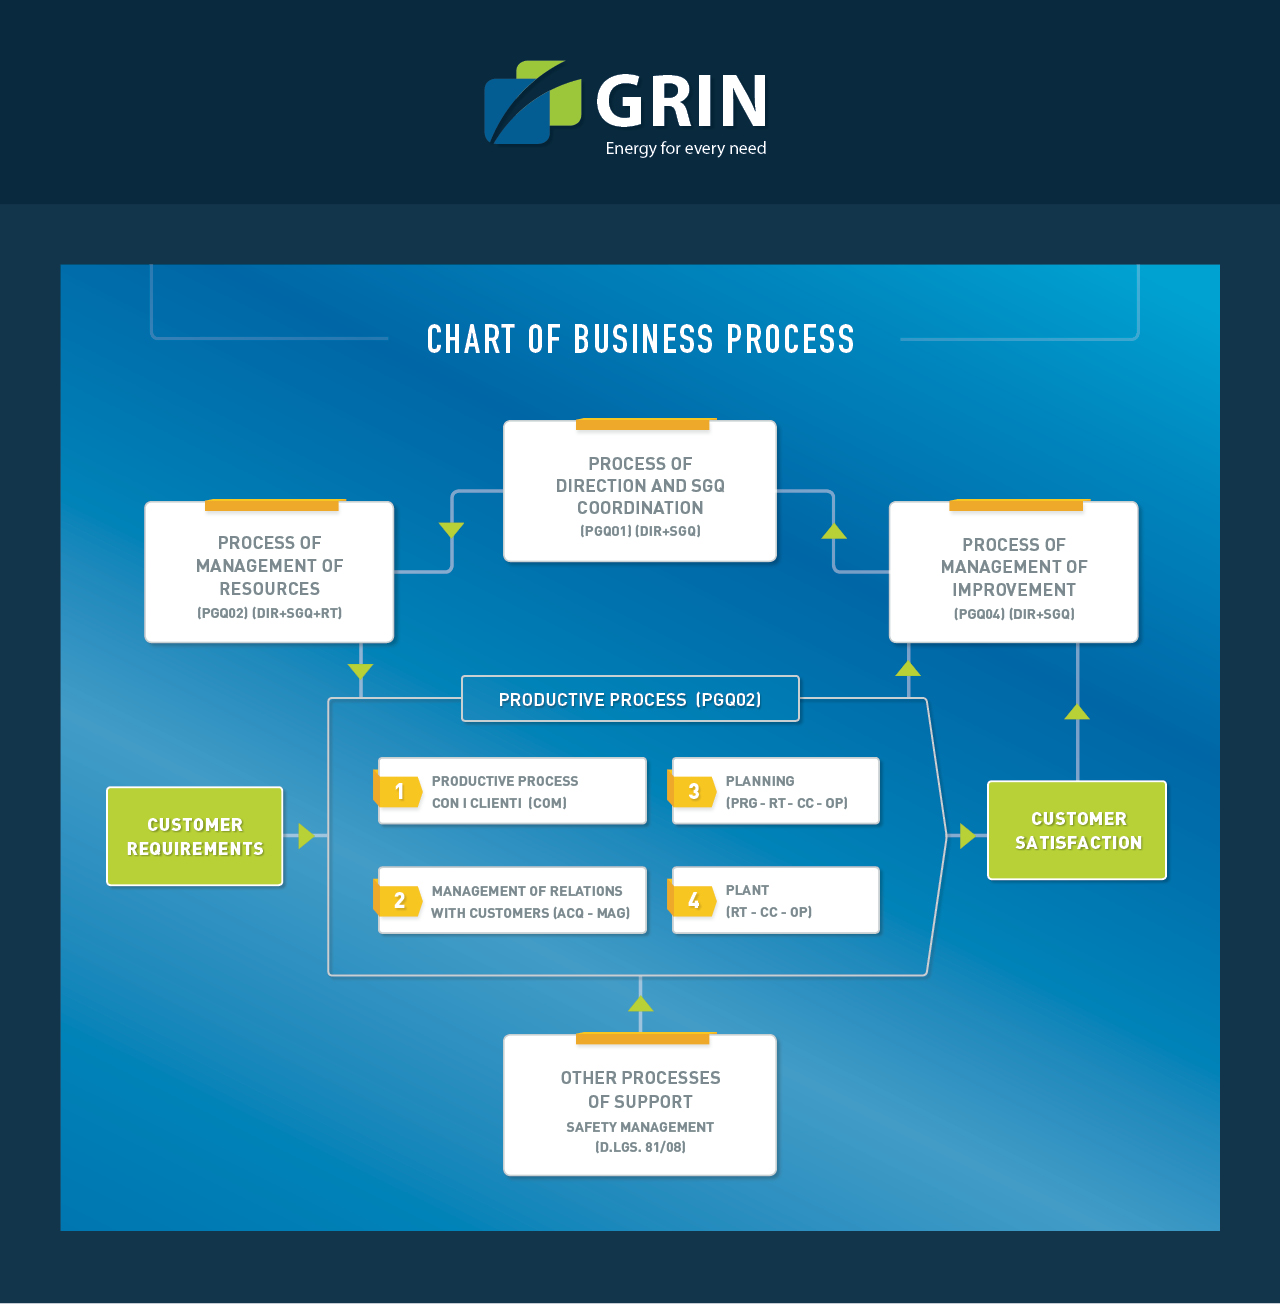 CHART OF BUSINESS PROCESS Grin